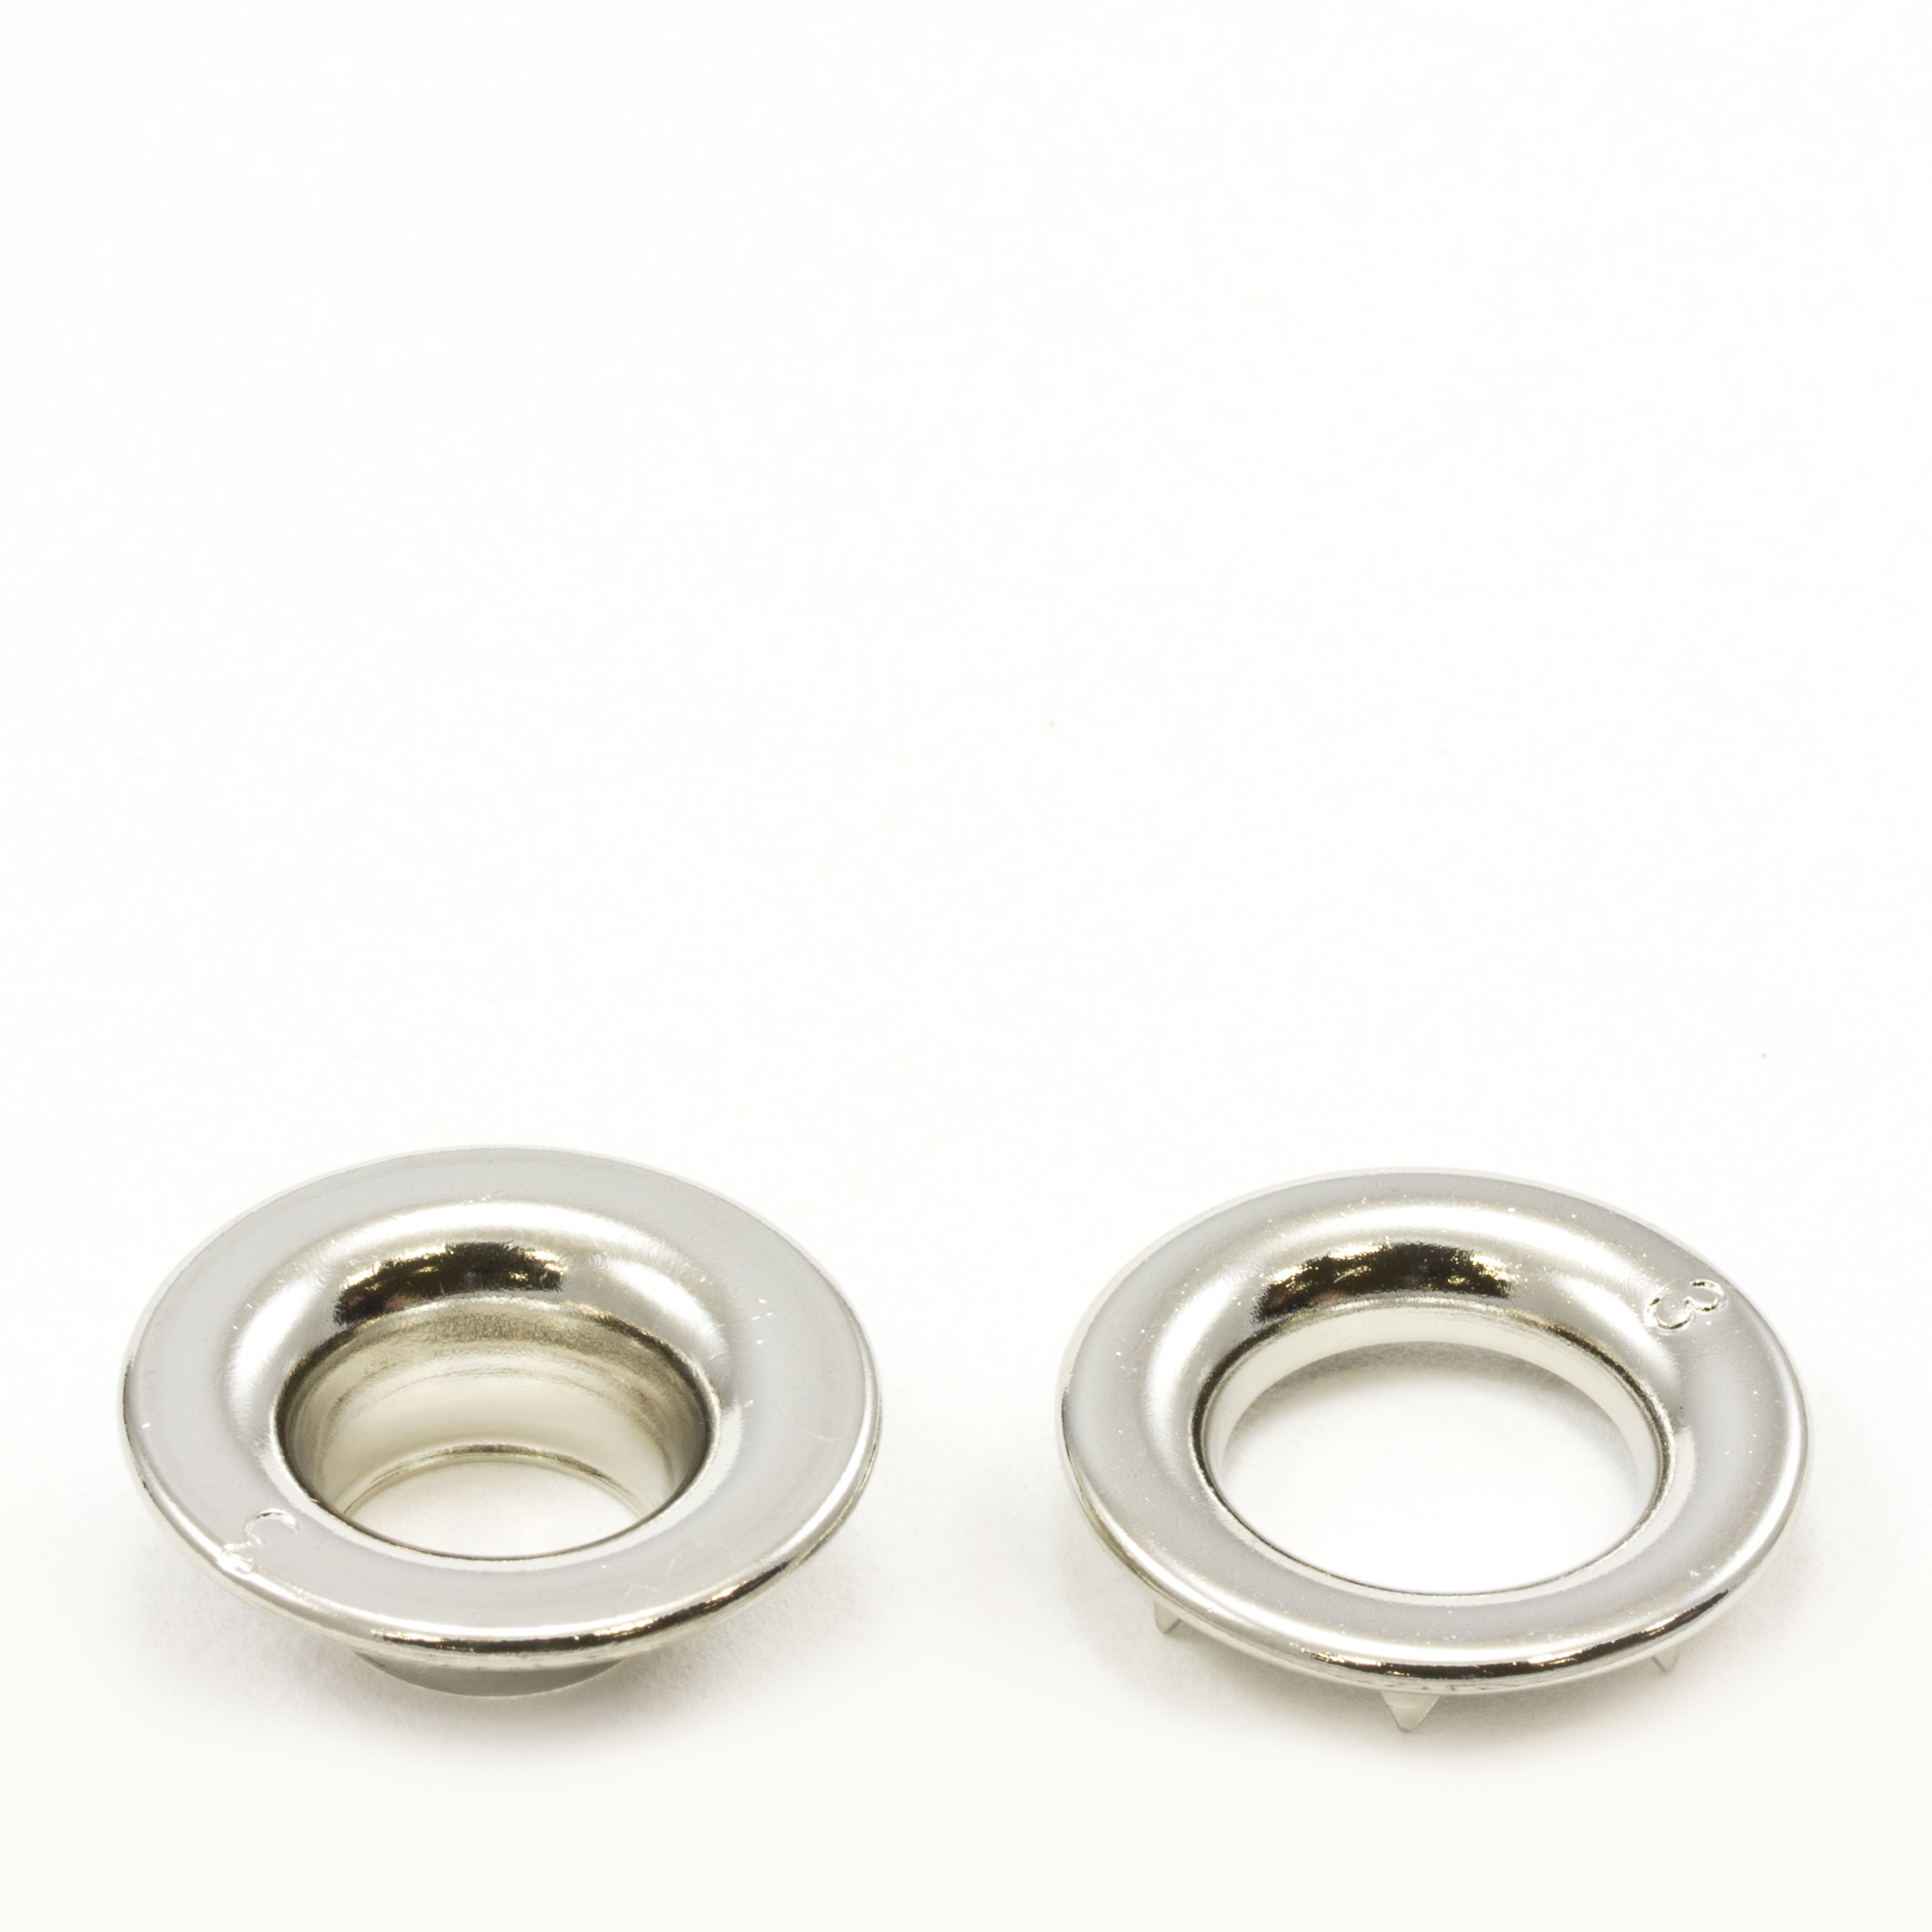 Thumbnail Rolled Rim Grommet with Spur Washer #3 Brass Nickel Plated 15/32  1